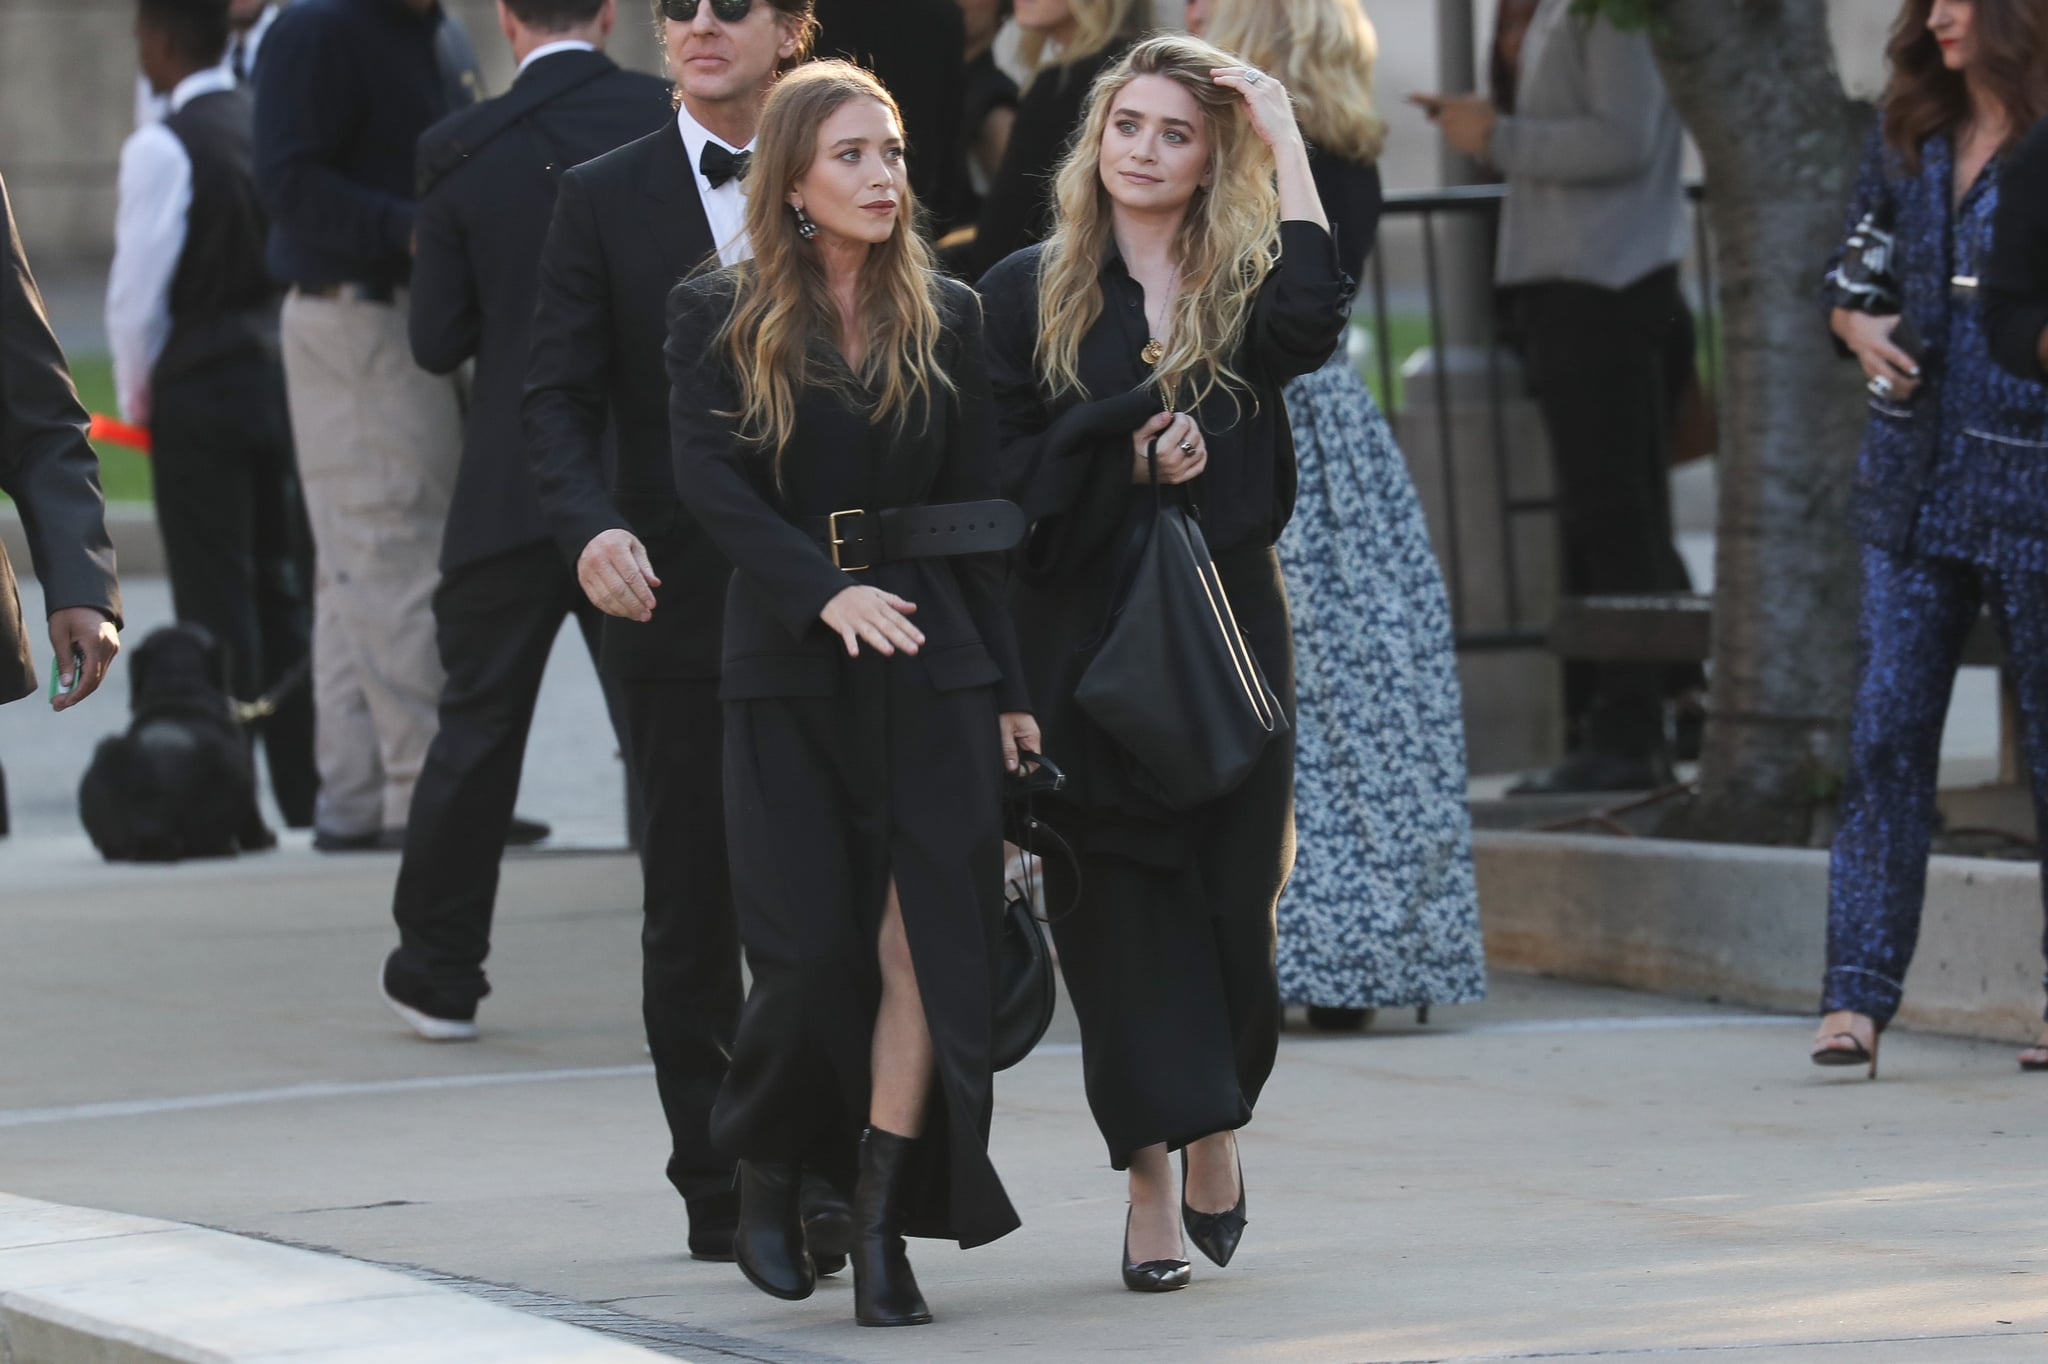 NEW YORK, NY - JUNE 04:  Mary-Kate Olsen and Ashley Olsen arrive for the 2018 CFDA Fashion Awards at Brooklyn Museum on June 4, 2018 in New York City.  (Photo by Rob Kim/GC Images)